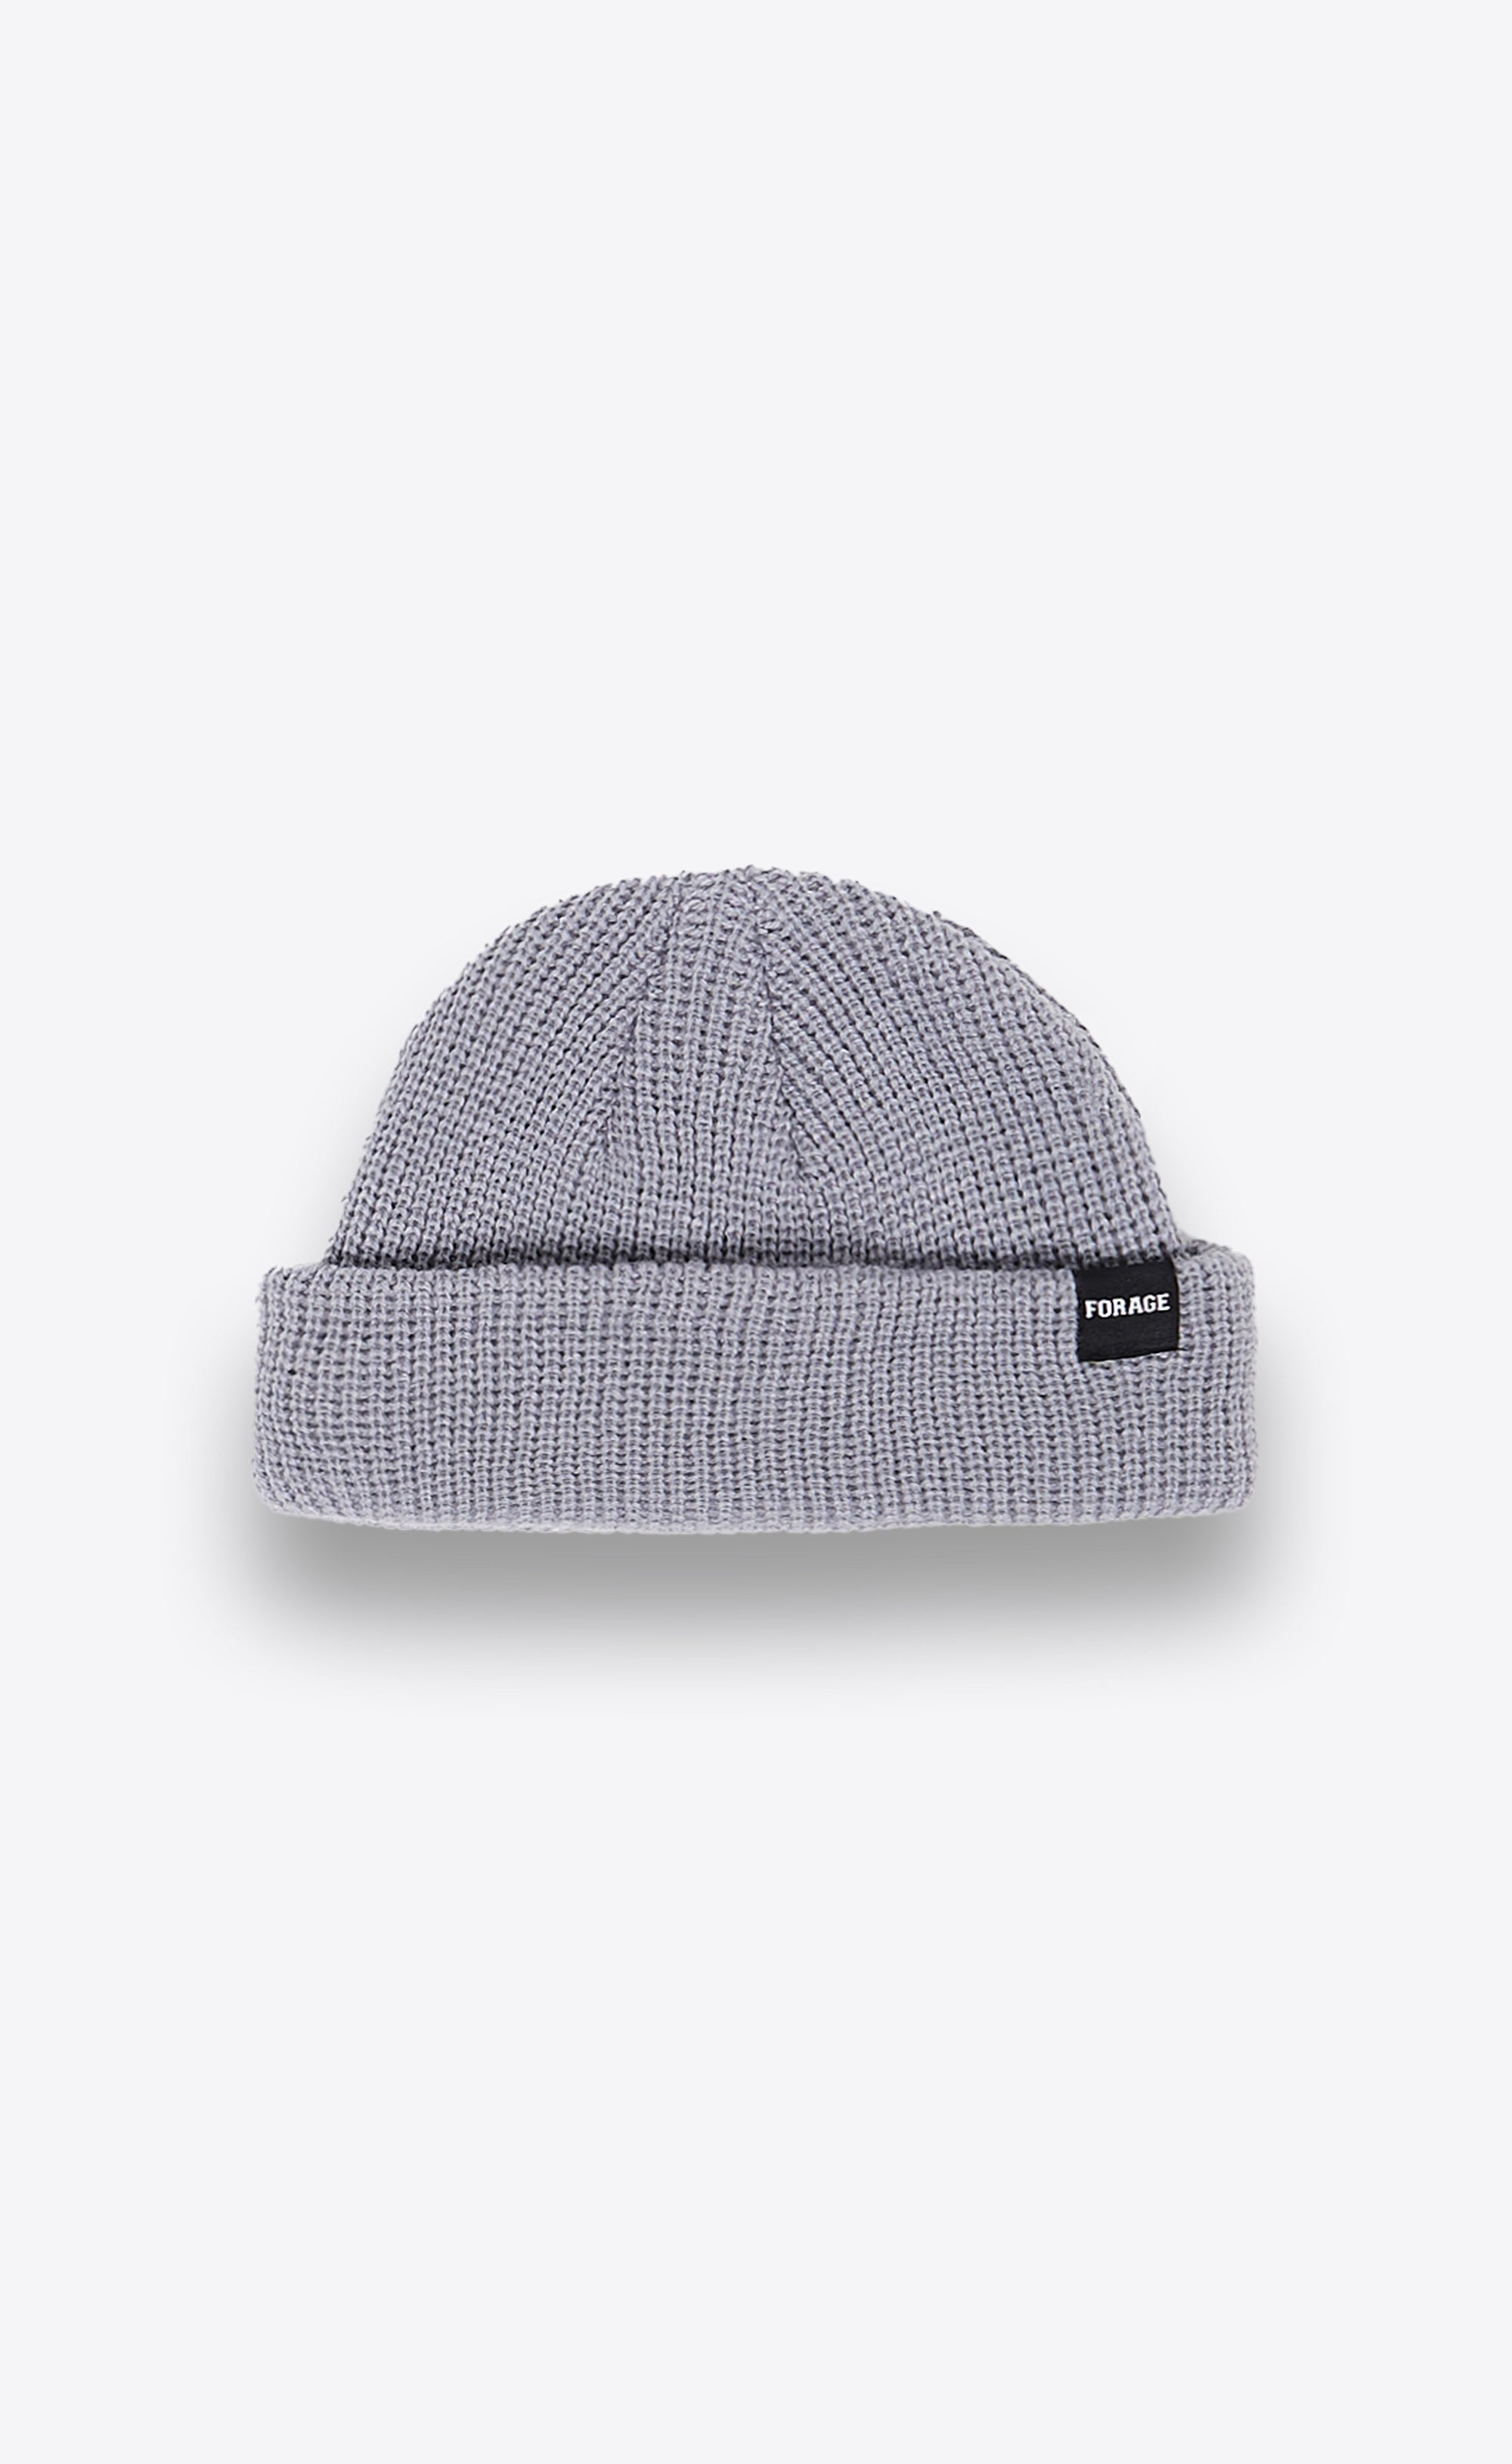 FISHERMAN BEANIE - DARK GREY - Forage-Clothing